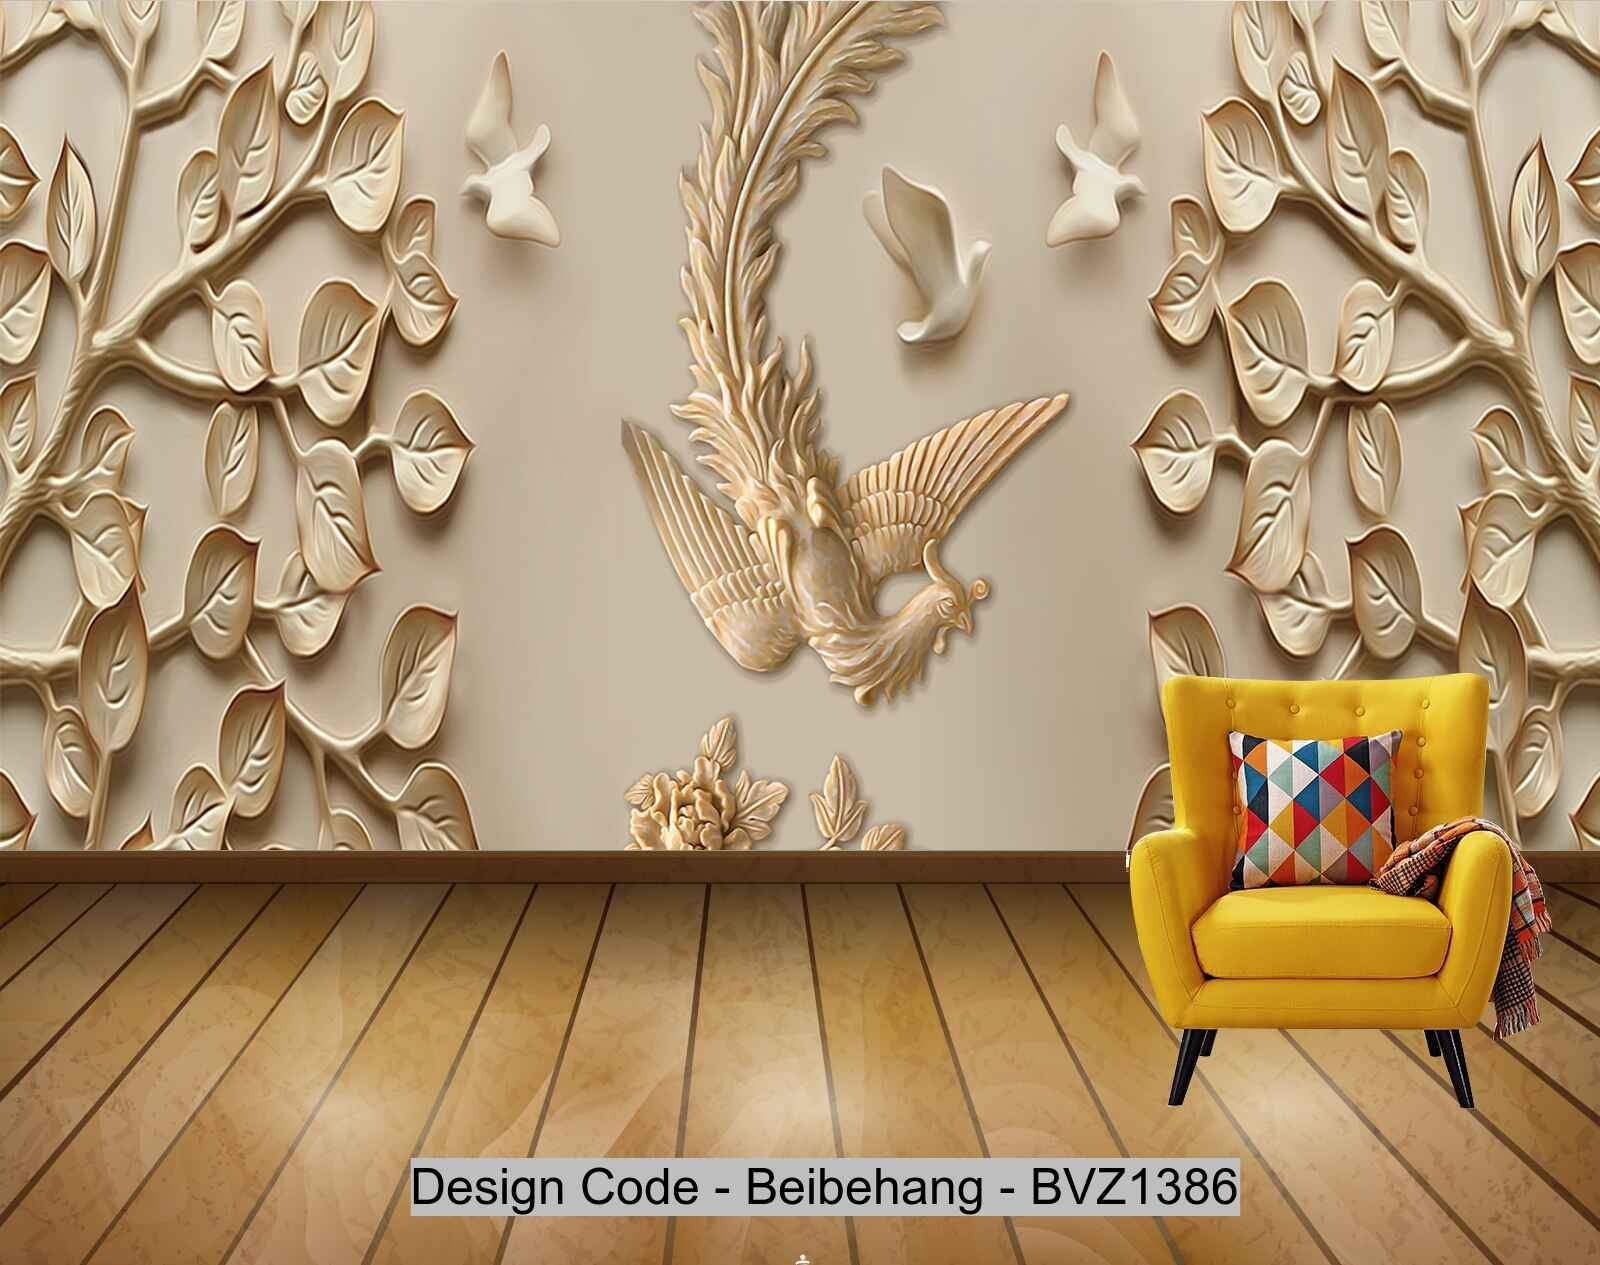 Beibehang Bvz1386 Chinese Fashion Embossed Leaves Phoenix P